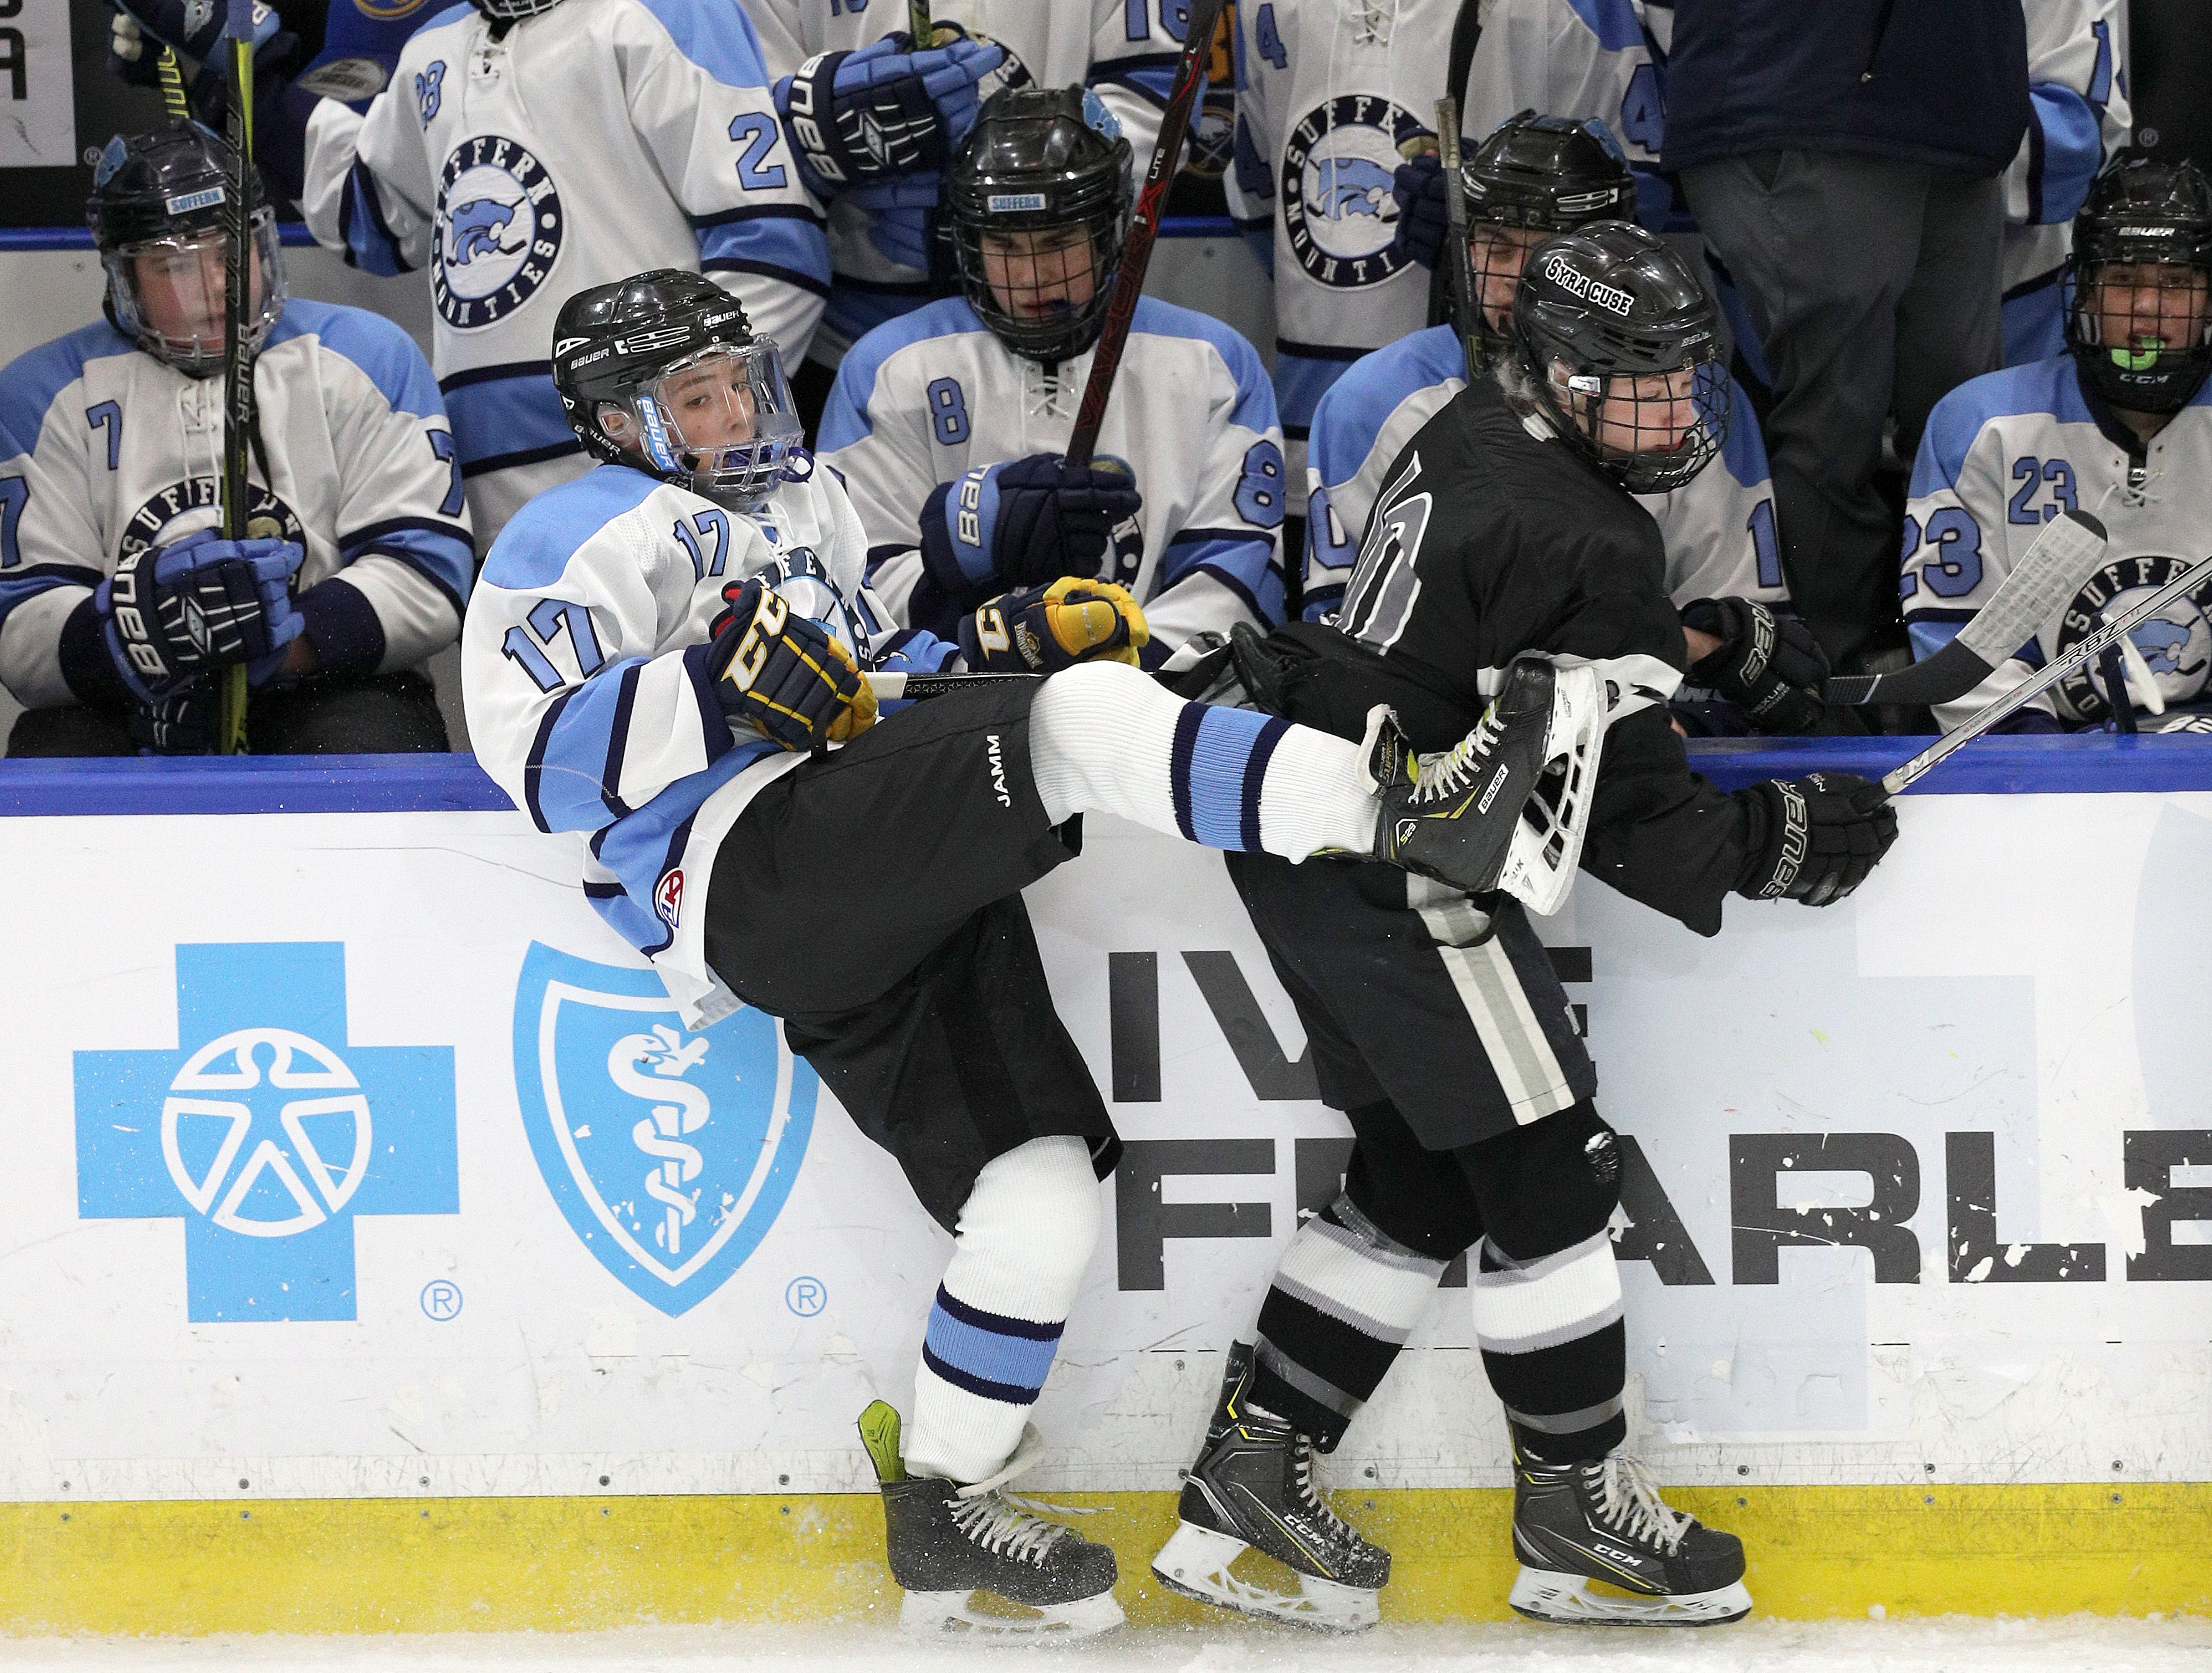 Suffern's Ben Burns is checked along the boards by Syracuse's Skariwate Papineau.